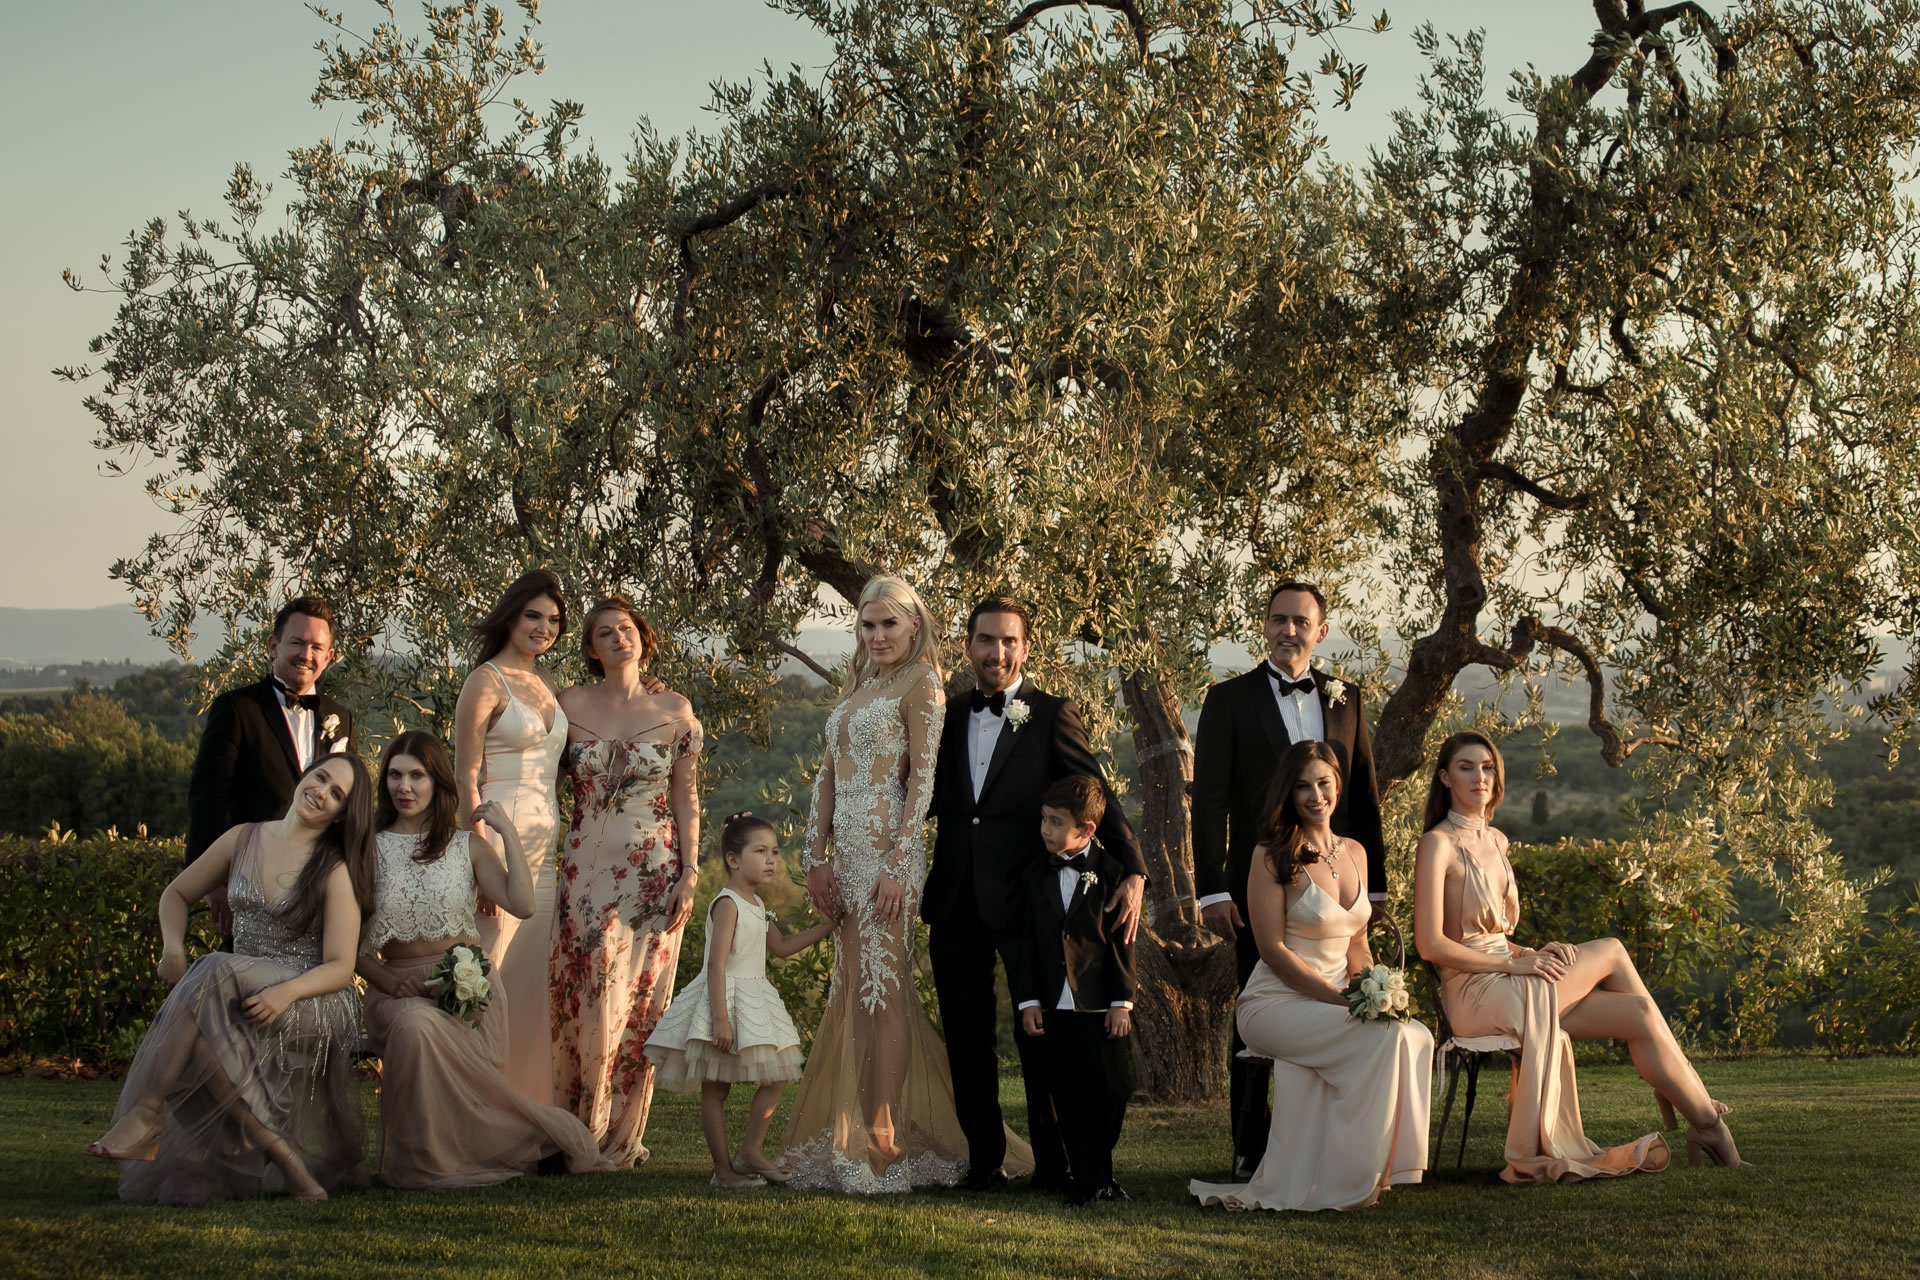 Famiy Group - 43 :: Exciting wedding in the countryside of Siena :: Luxury wedding photography - 42 :: Famiy Group - 43